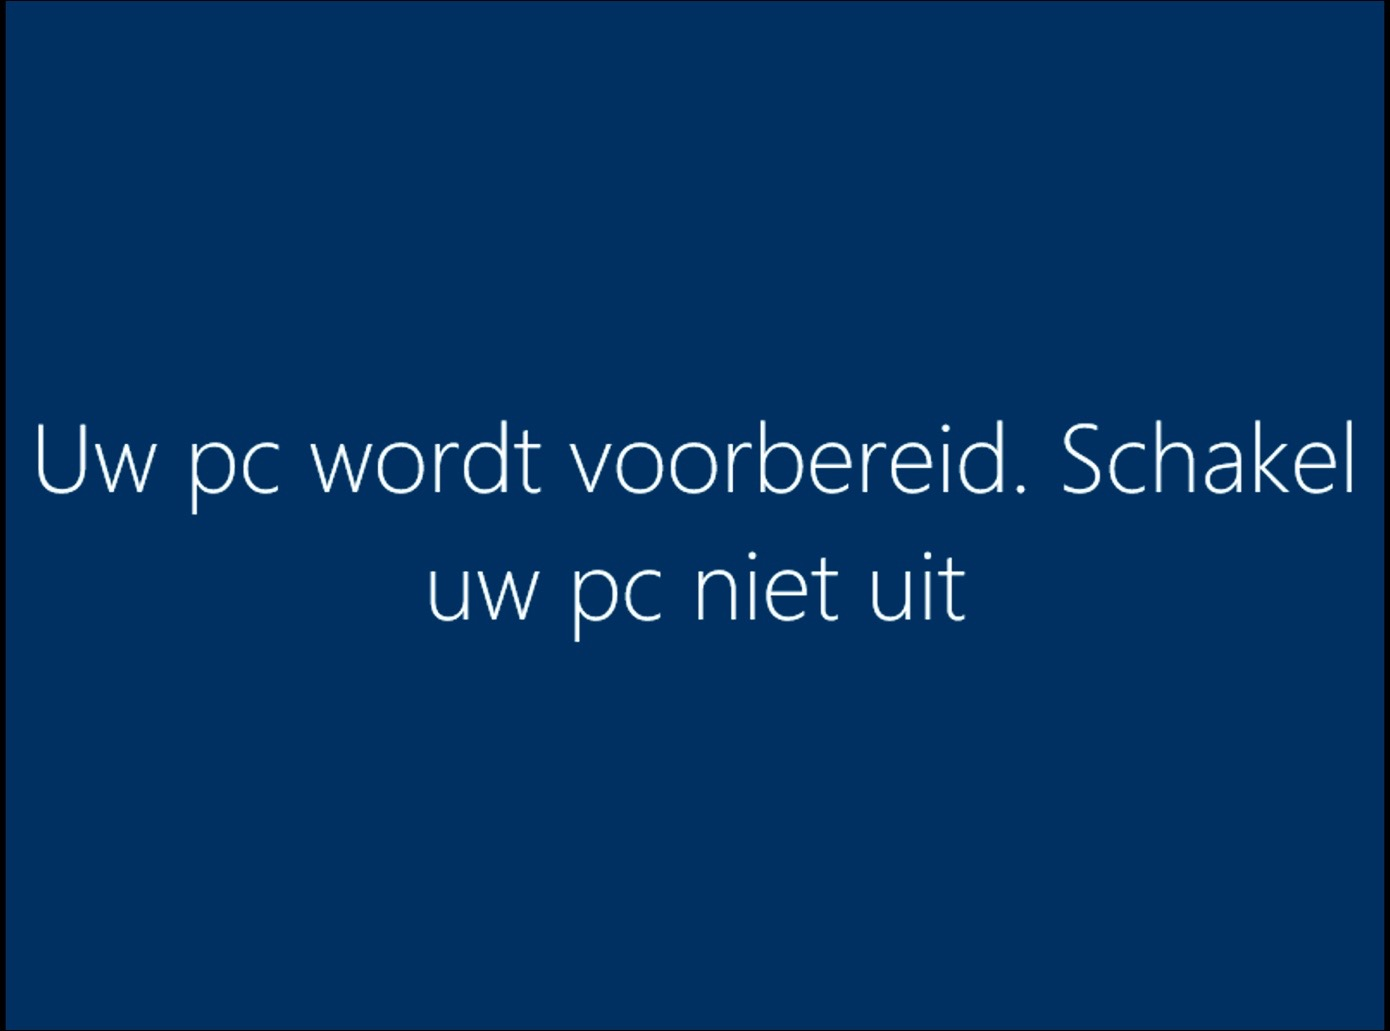 windows 10 wordt voorbereid